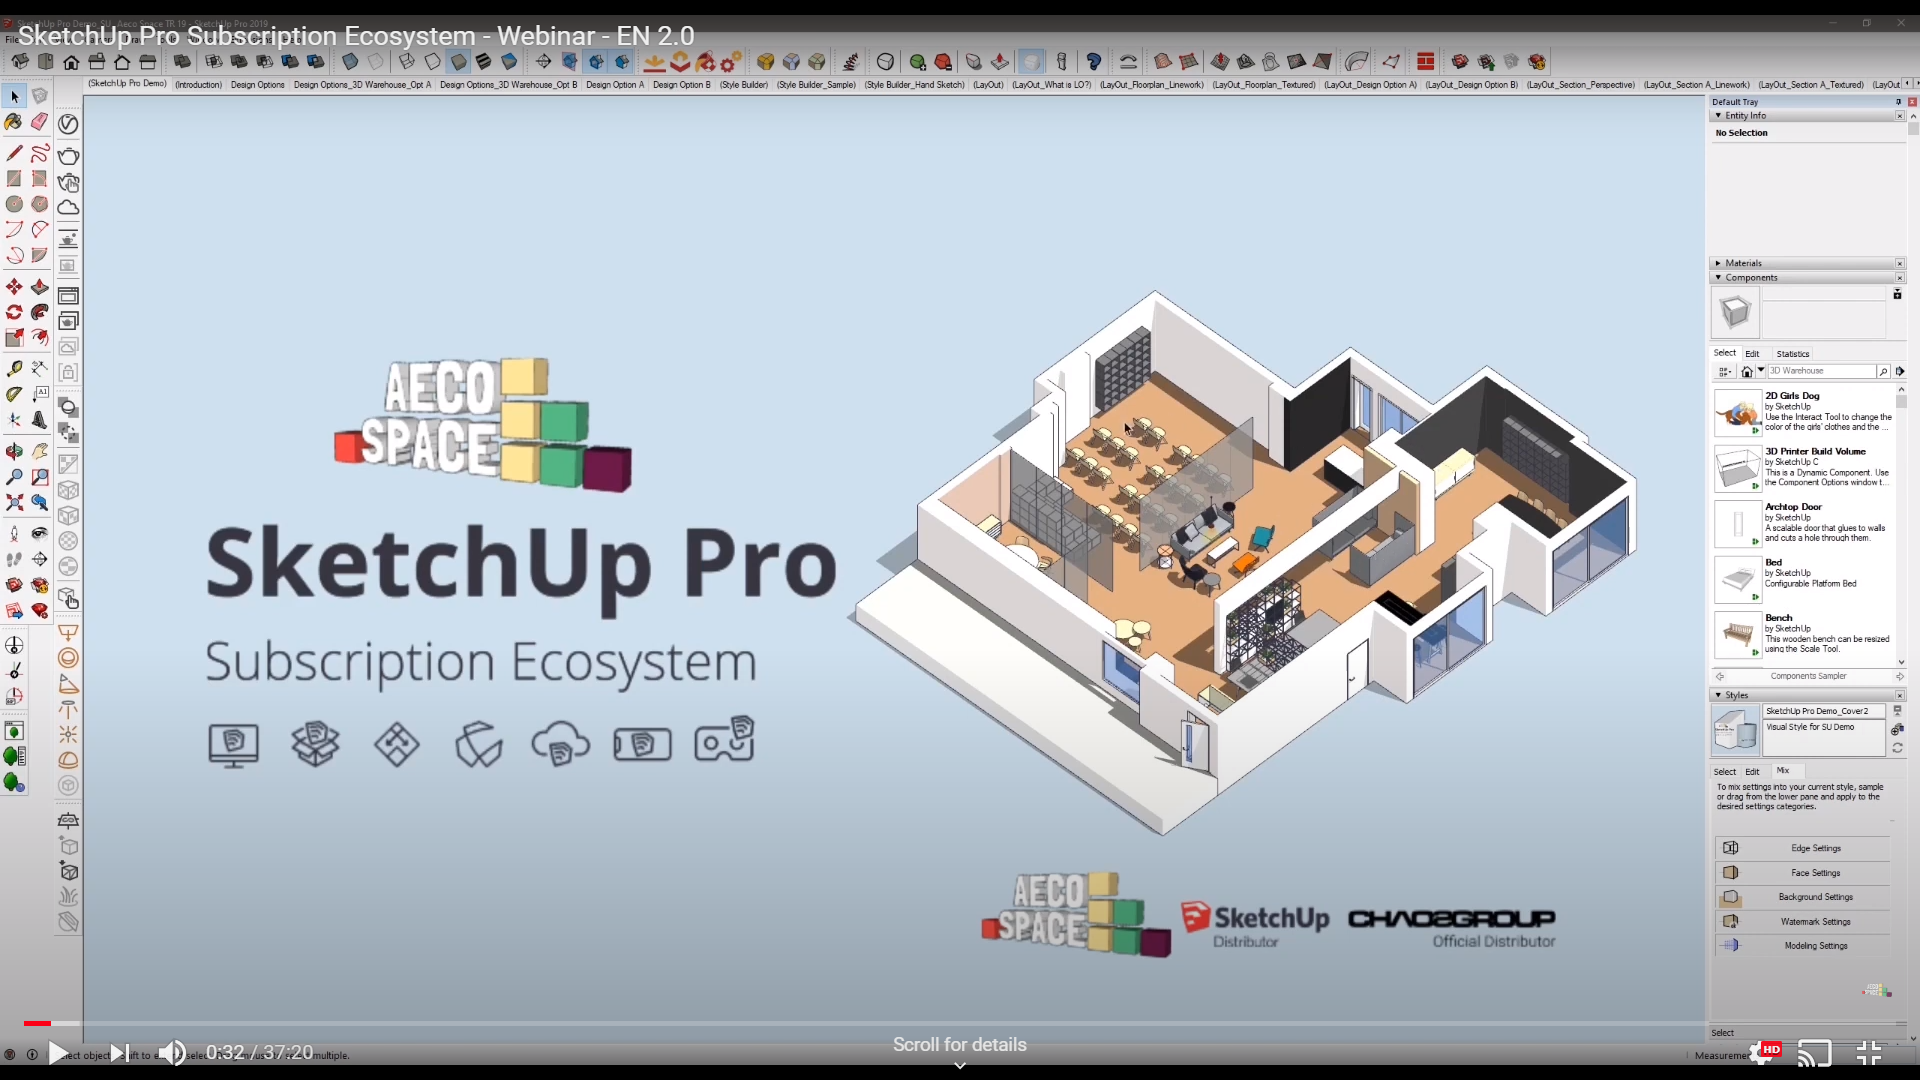 SketchUp Pro Subscription Ecosystem - Webinar by AECO Space - EN